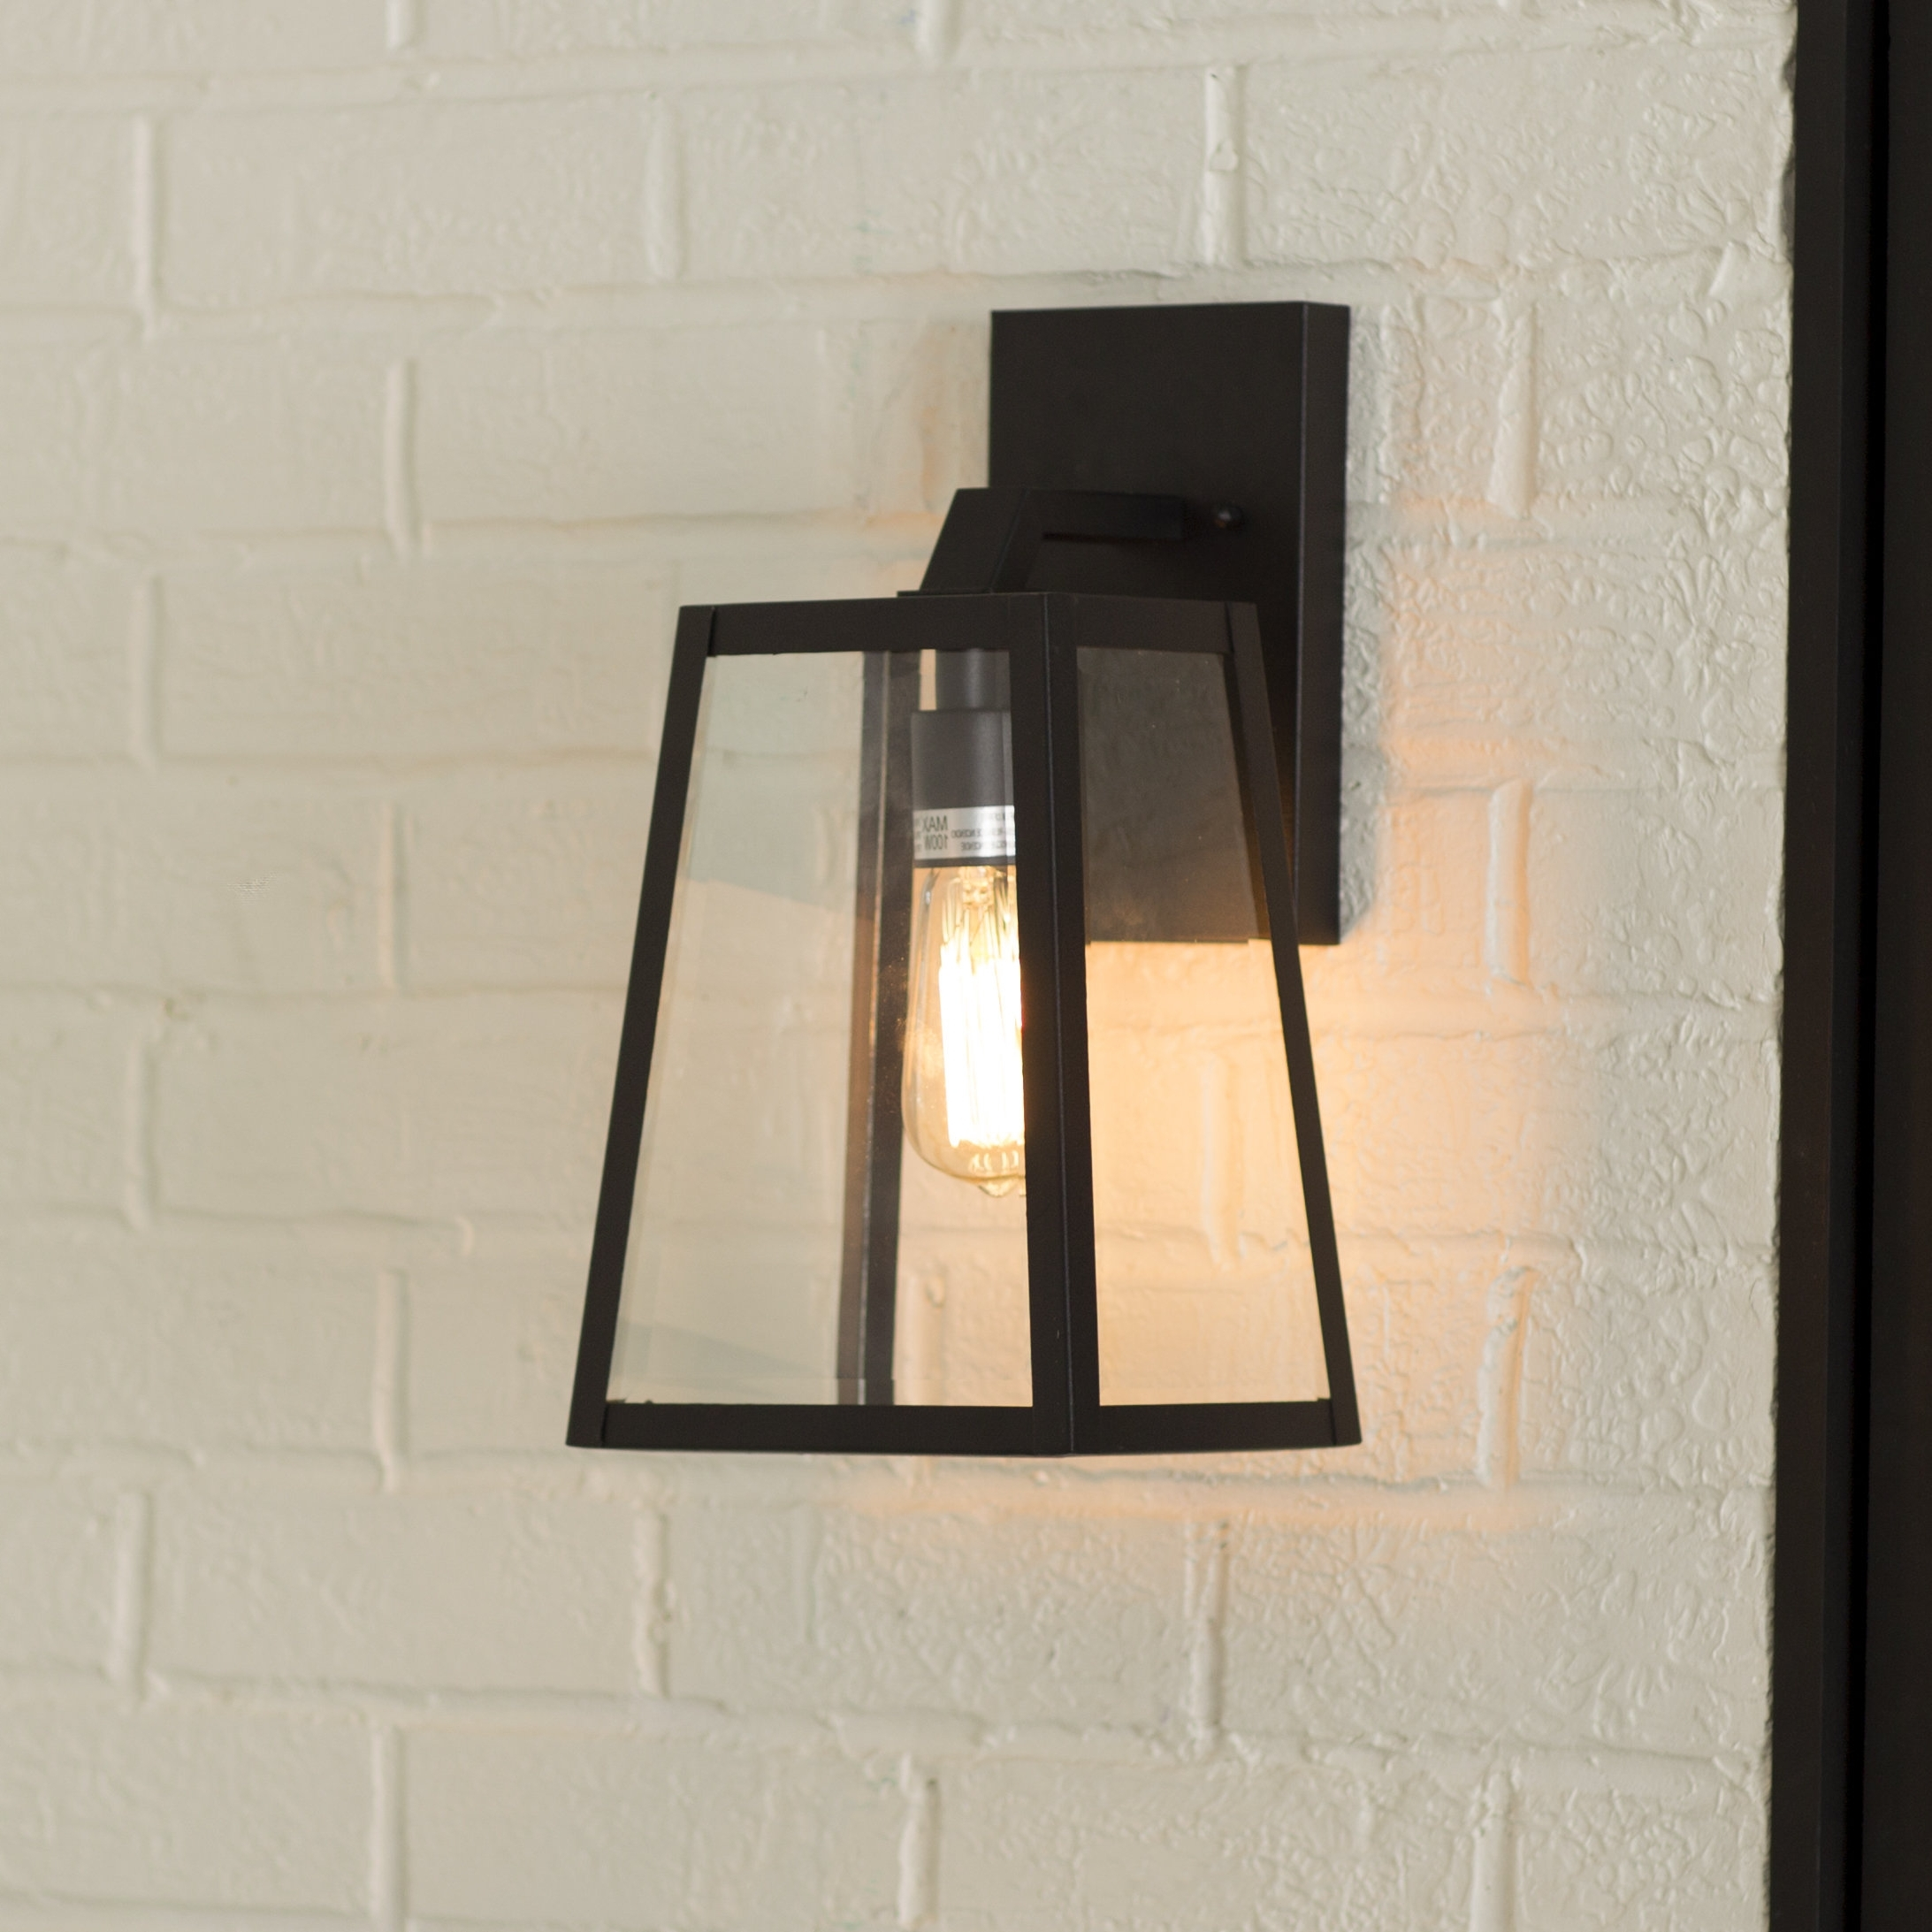 Wayfair Pertaining To Well Known Outdoor Wall Lanterns (View 17 of 20)